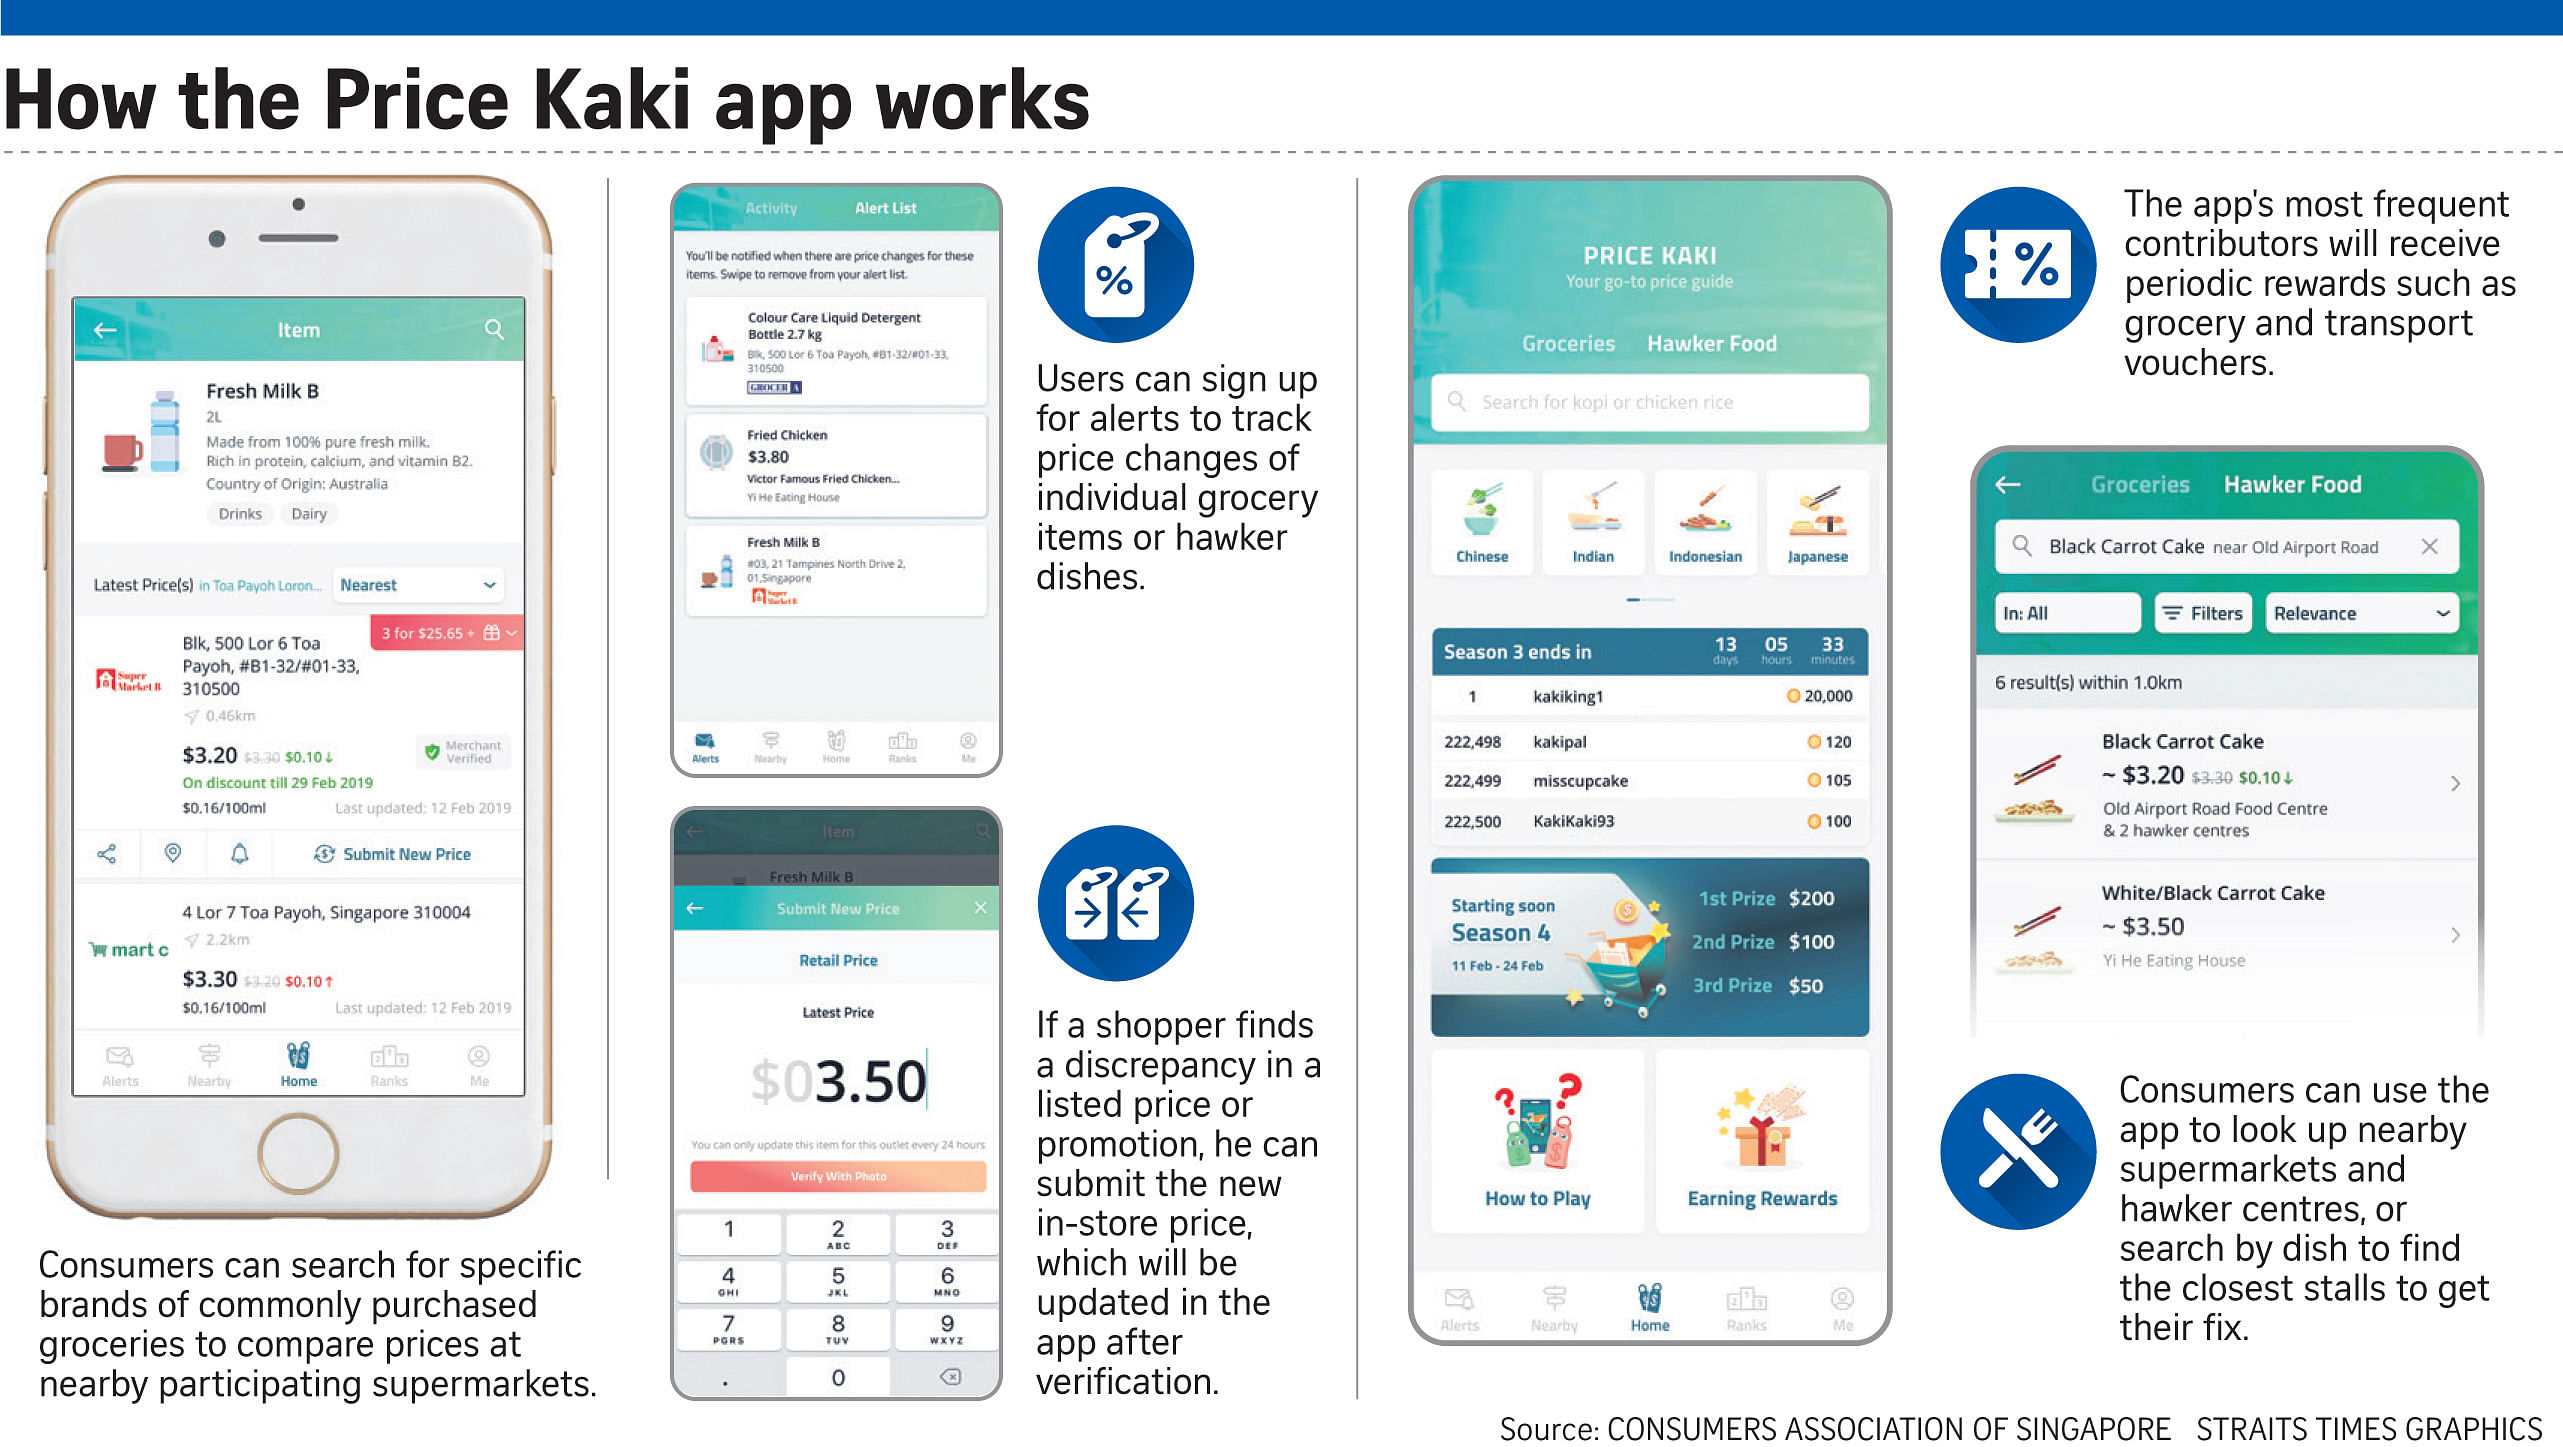 New app to help consumers compare prices, Singapore News